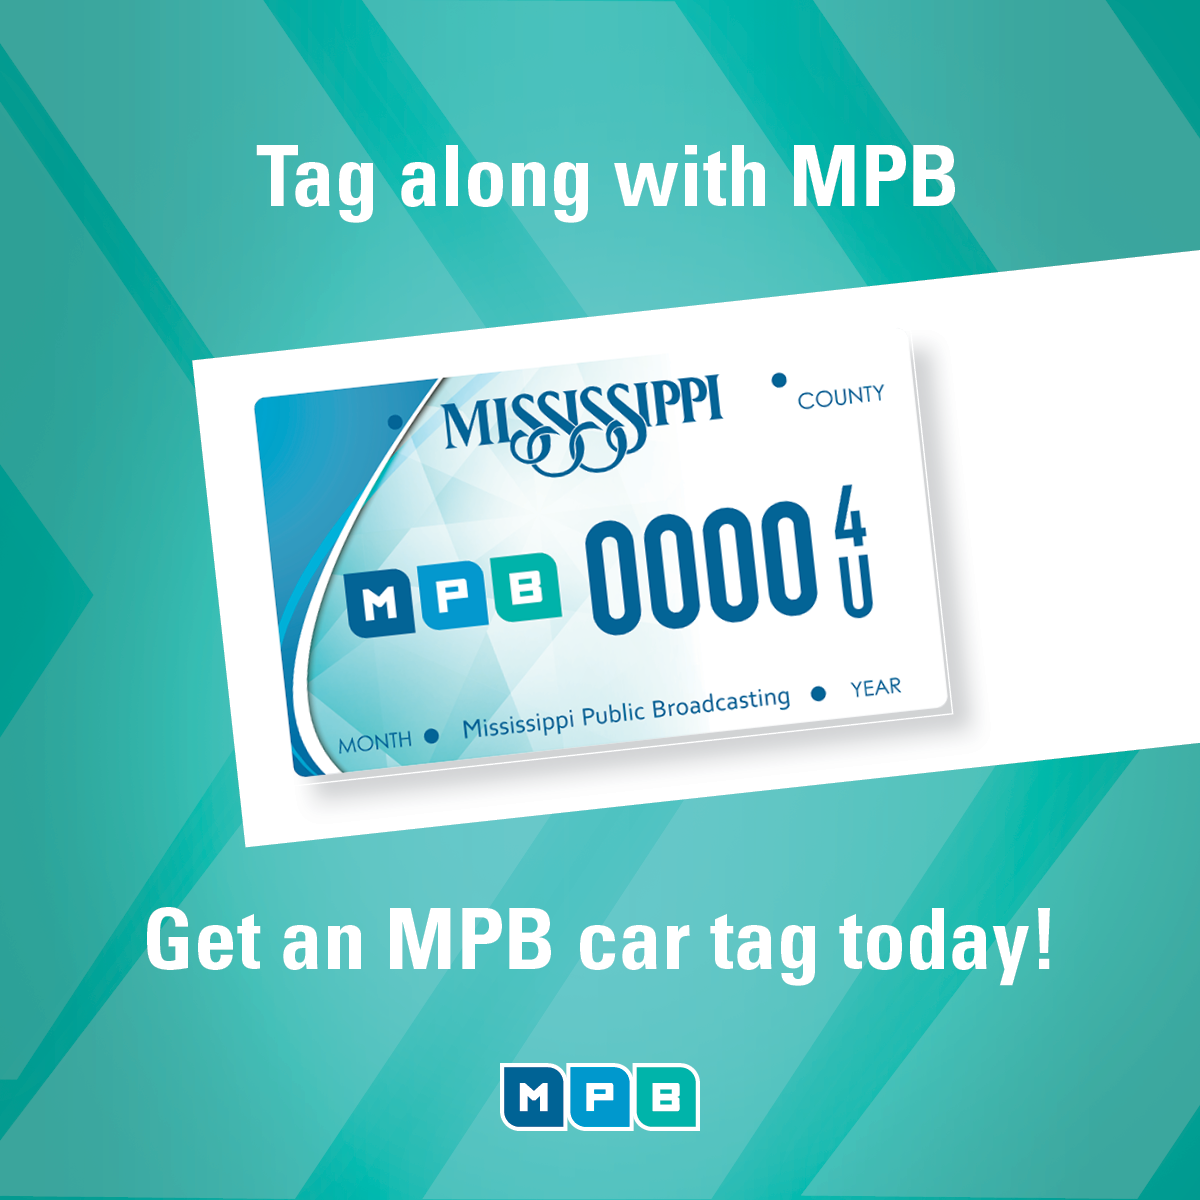 Tag along with MPB! Get the new MPB Car Tag!